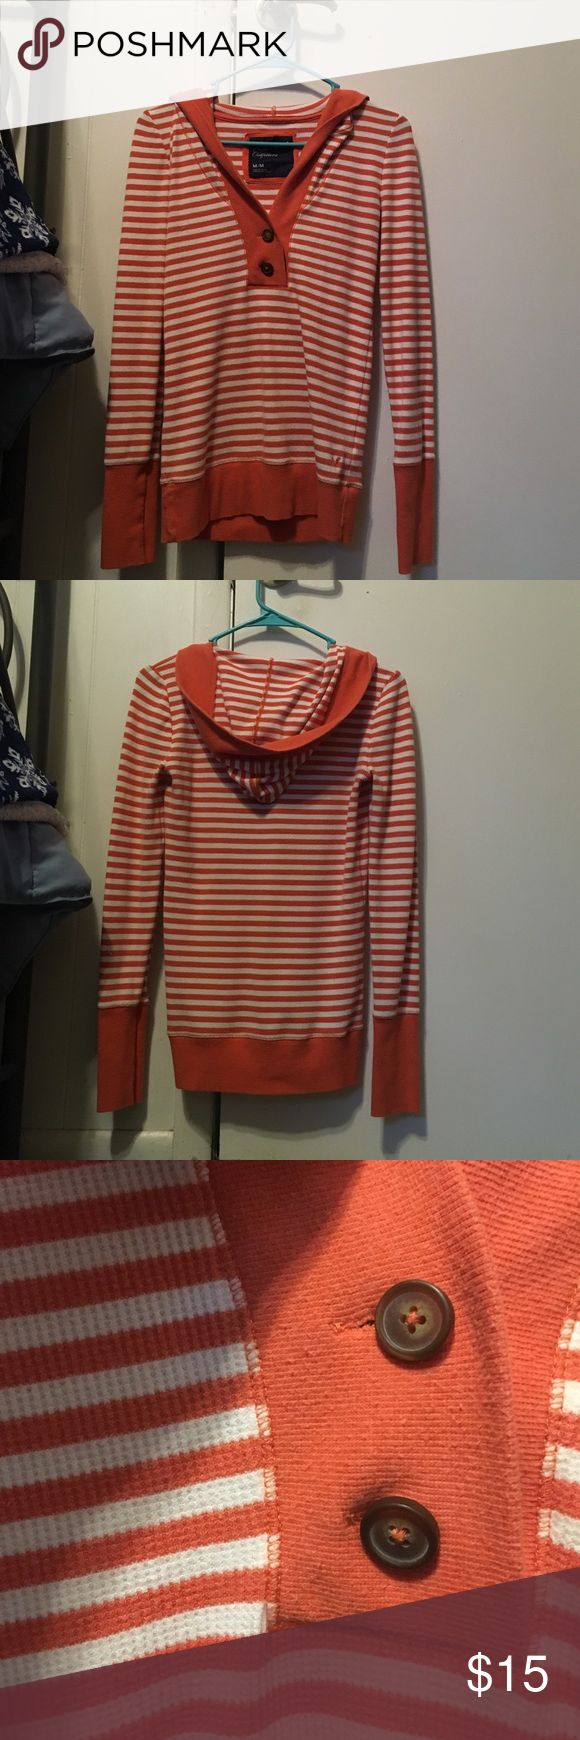 AEO Light Weight Striped Hoodie Good Condition Hey guys! I'm selling this cute light weight striped hoodie from American Eagle Outfitters. It has been worn a handful of times so there is piling in areas but no stains, rips, or marks anywhere. American Eagle Outfitters Tops